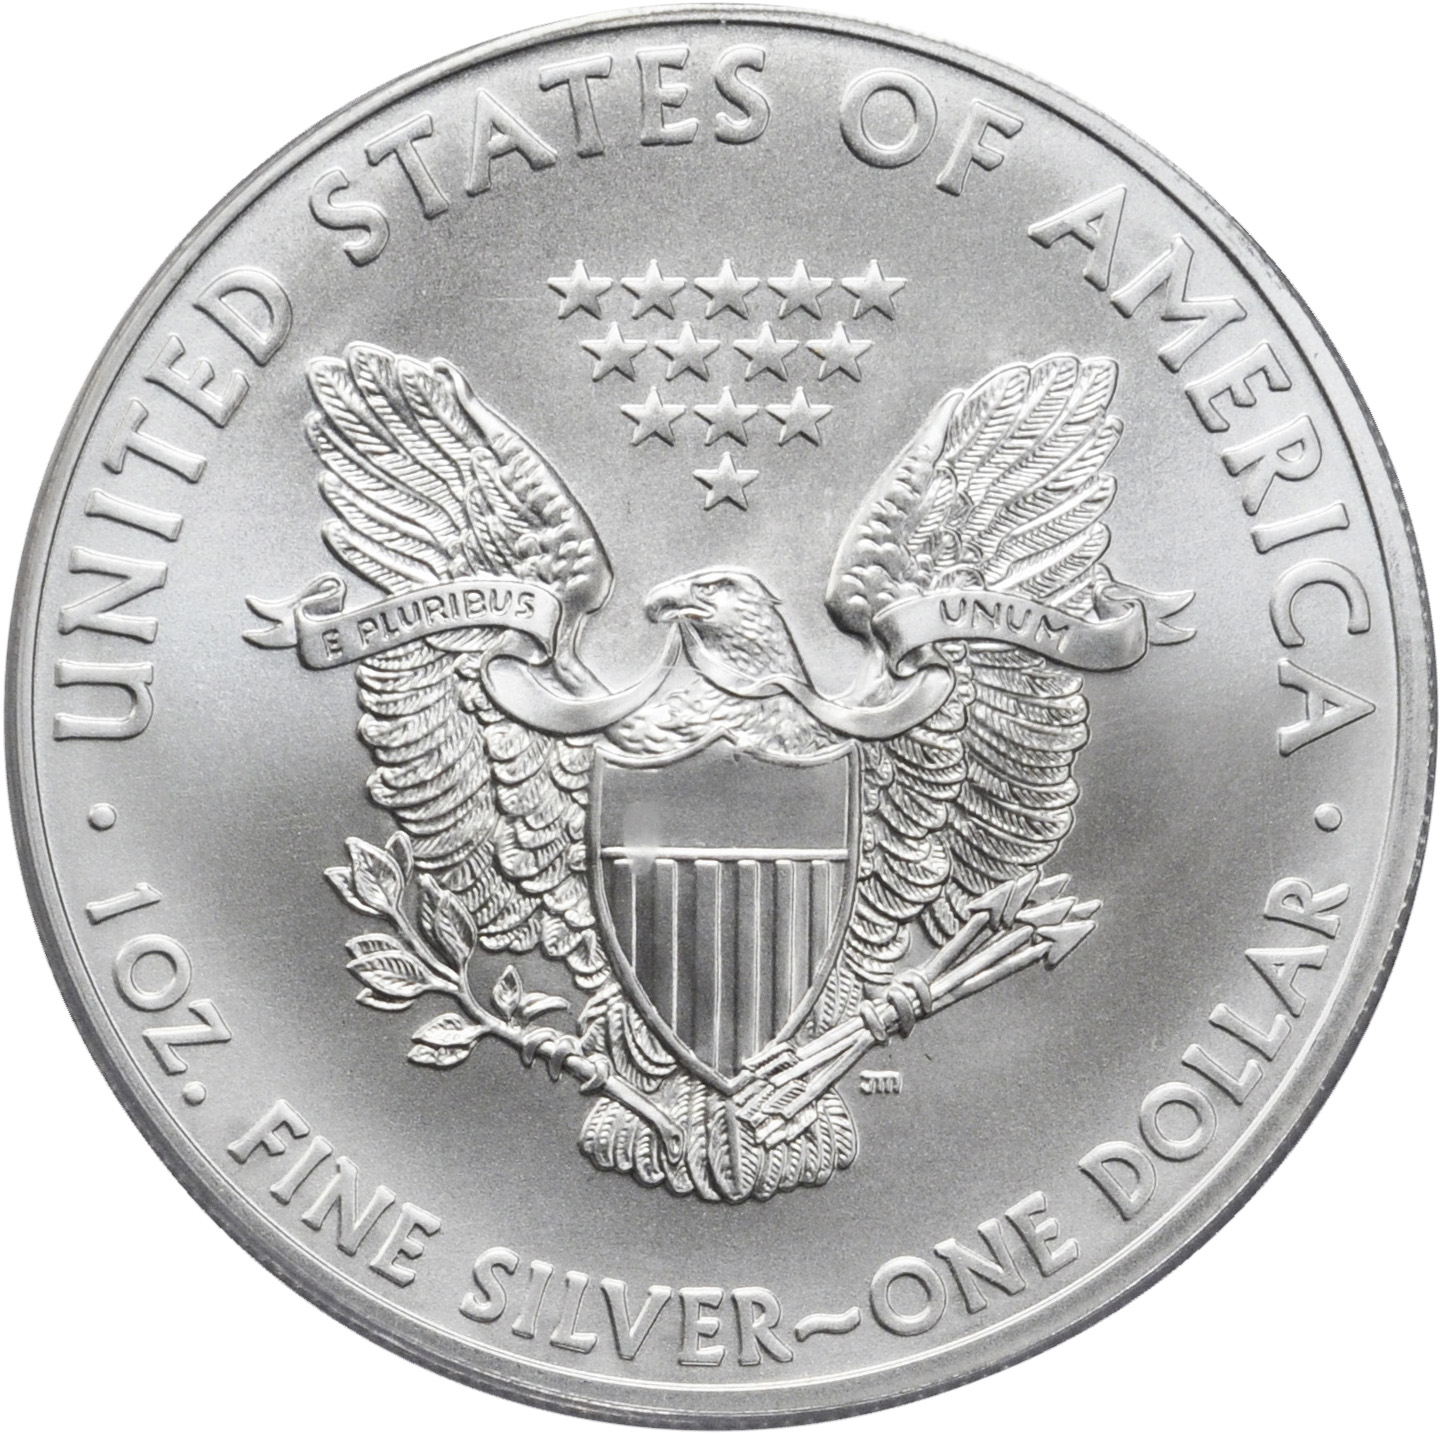 Value Of 1 Silver Coin